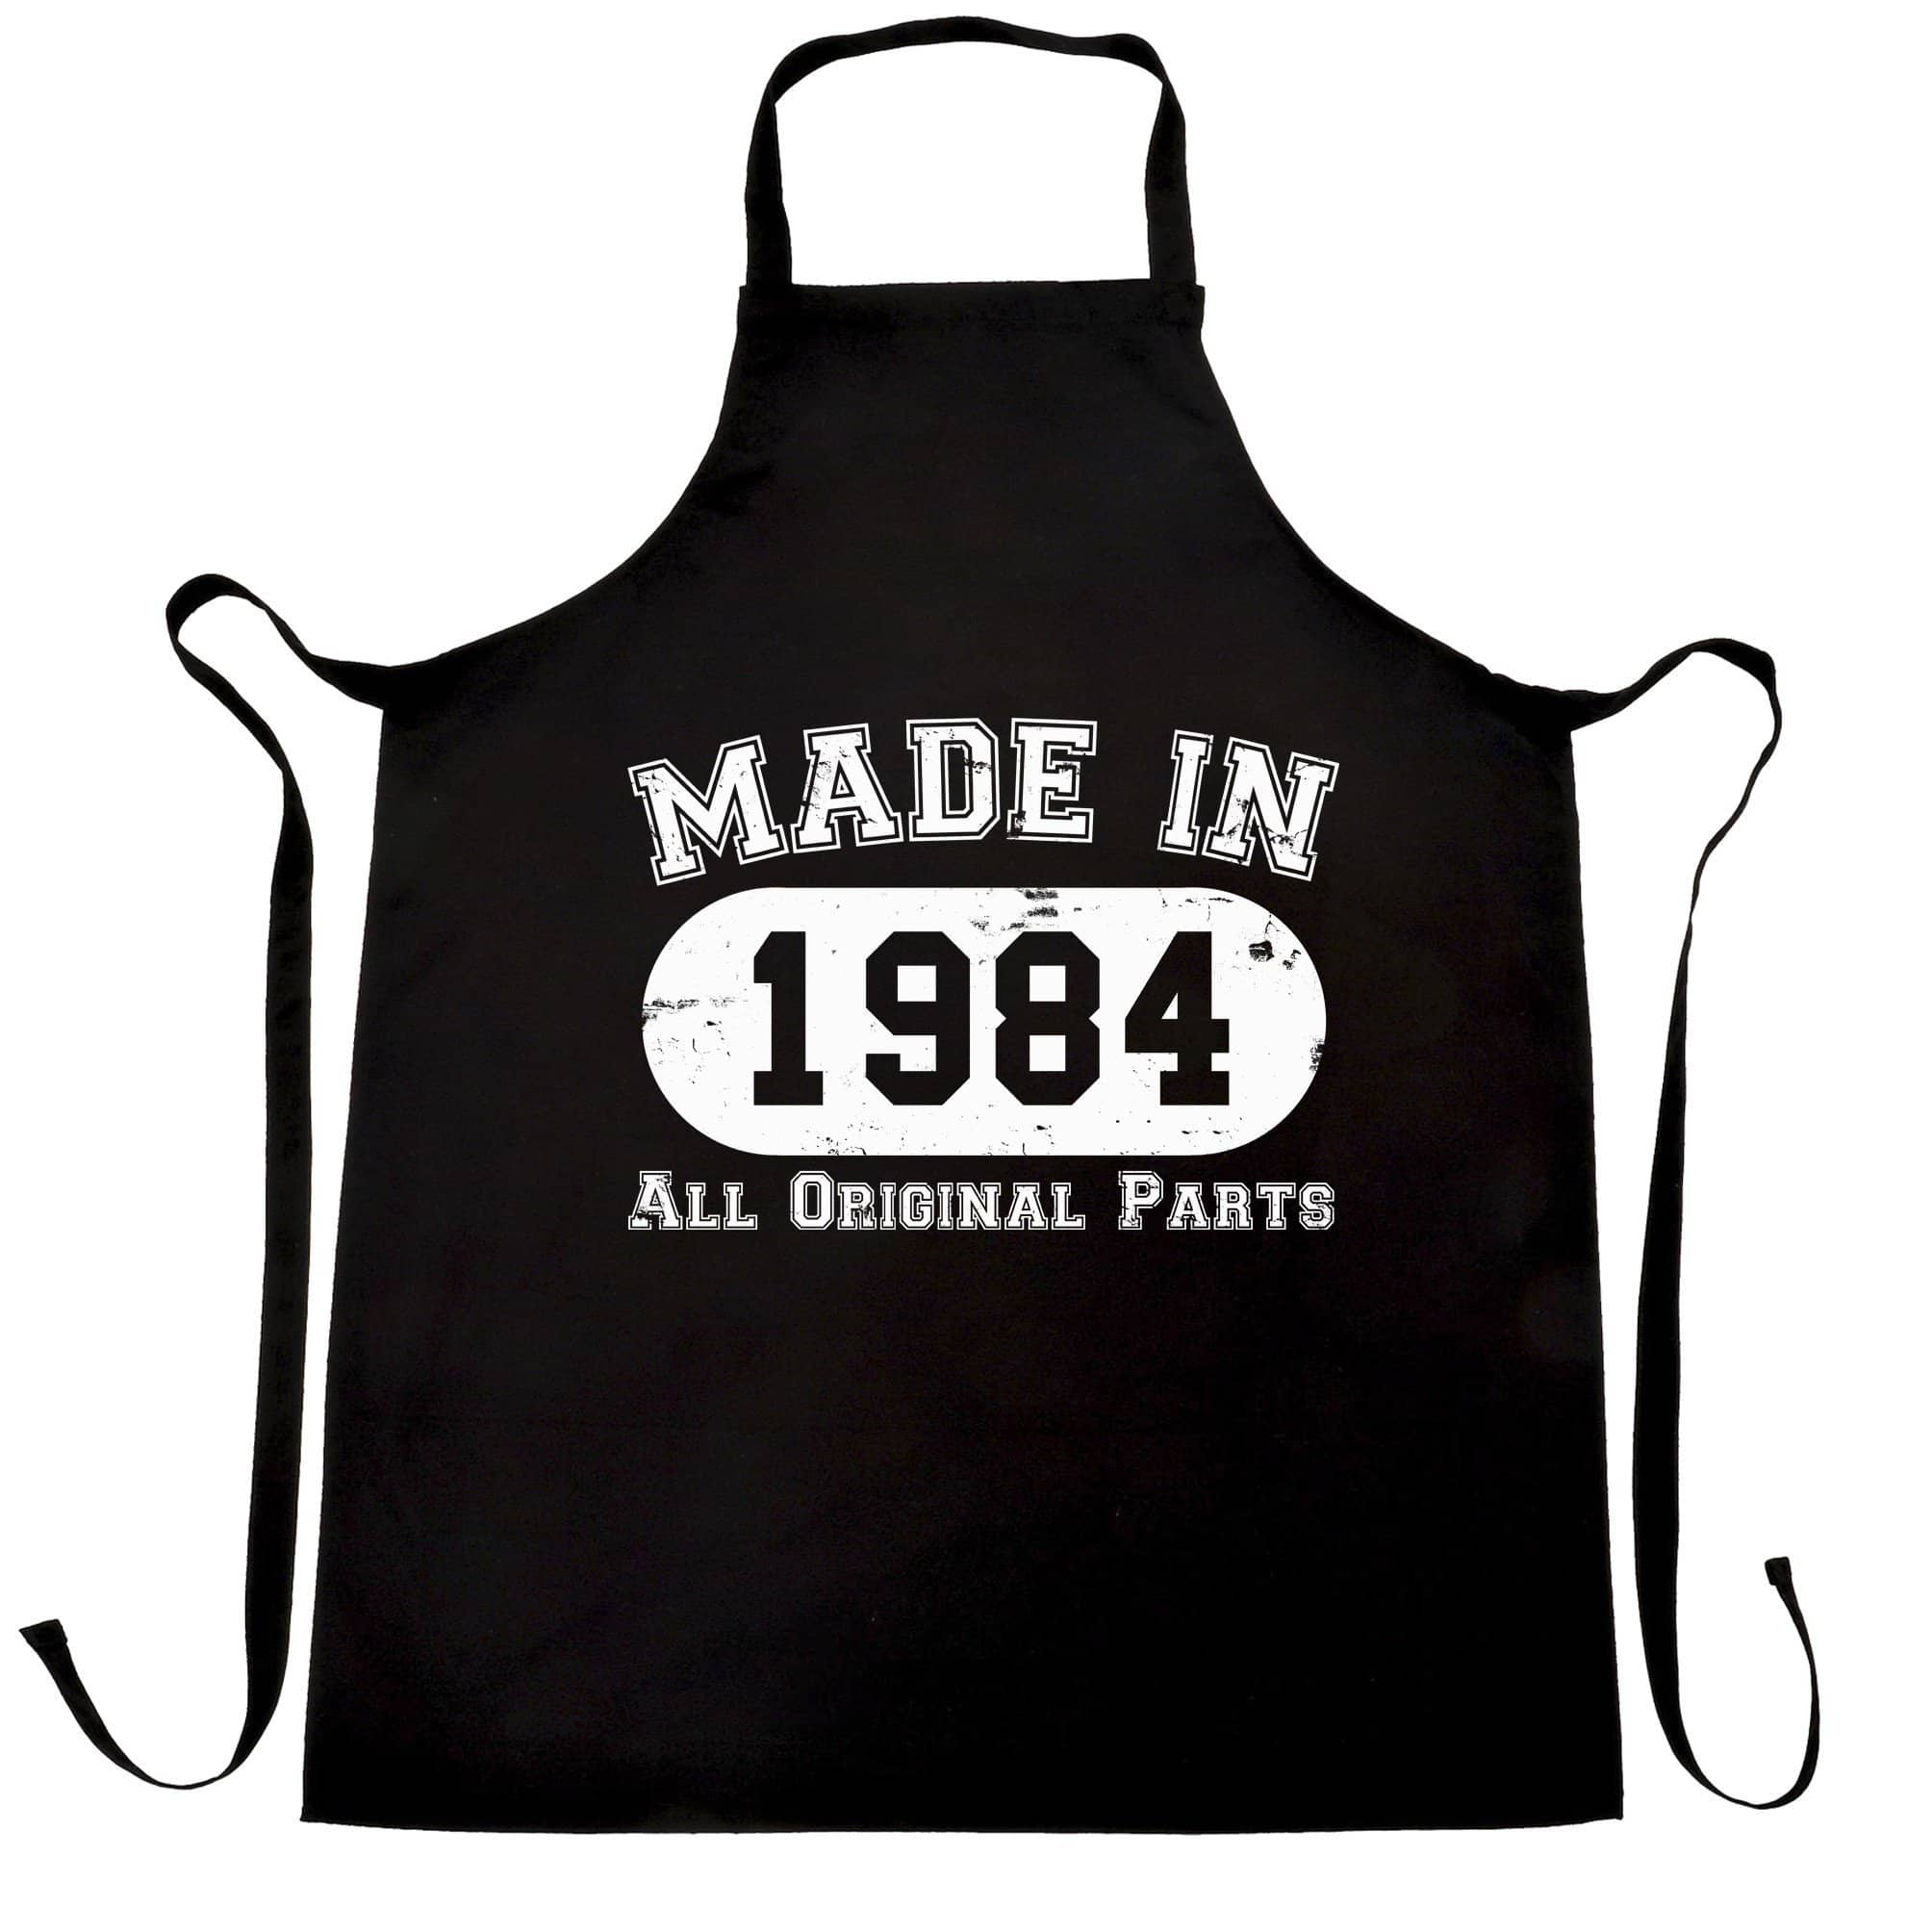 Made in 1984 All Original Parts Apron [Distressed]